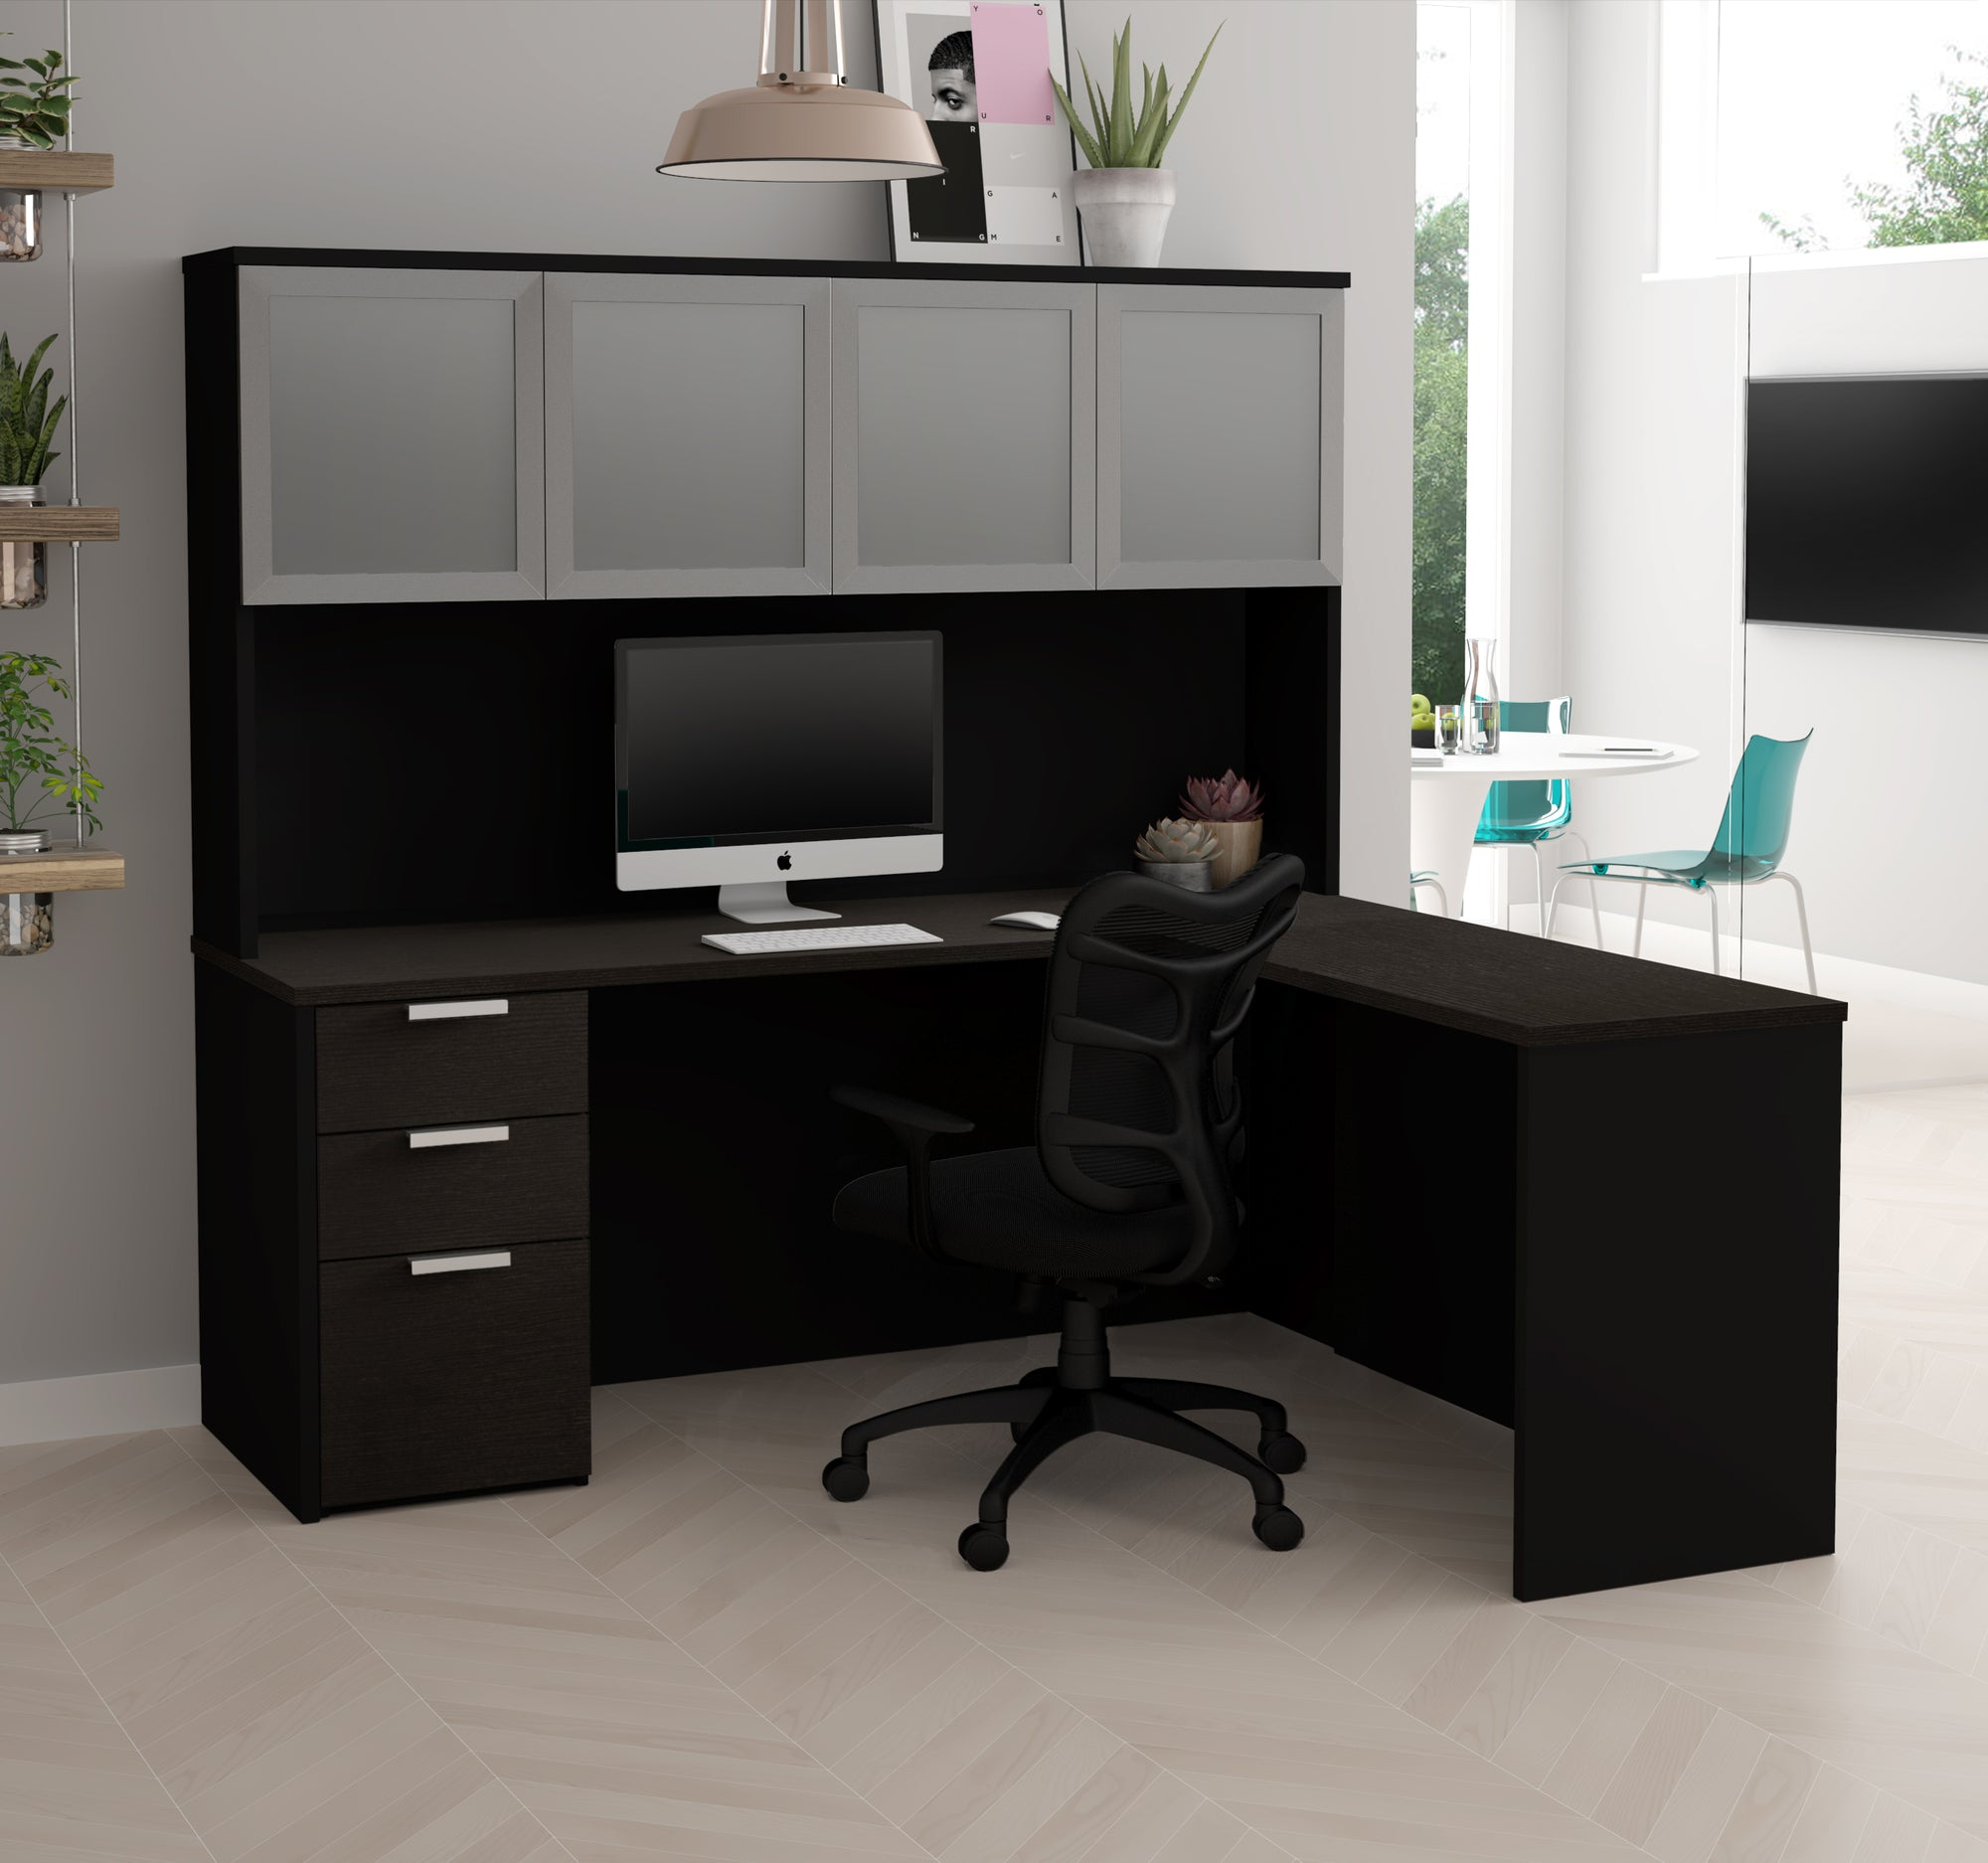 fice ideas home desks desk shaped impressive office l design modern shape